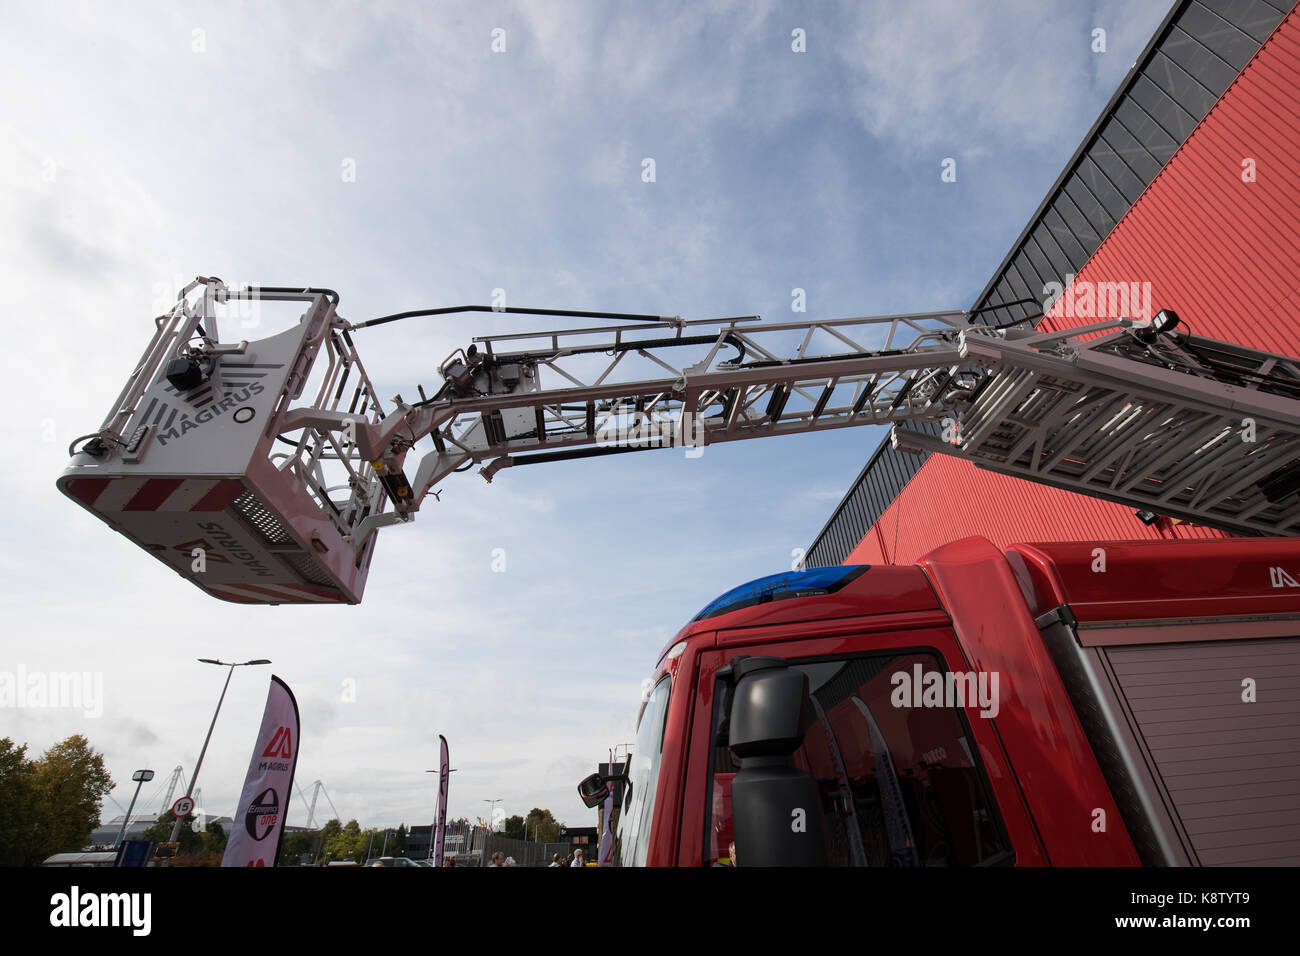 Emergency One/Clan Tools M32L-AT turntable ladder featuring a telescopic five section ladder with 32 metre working - Stock Image